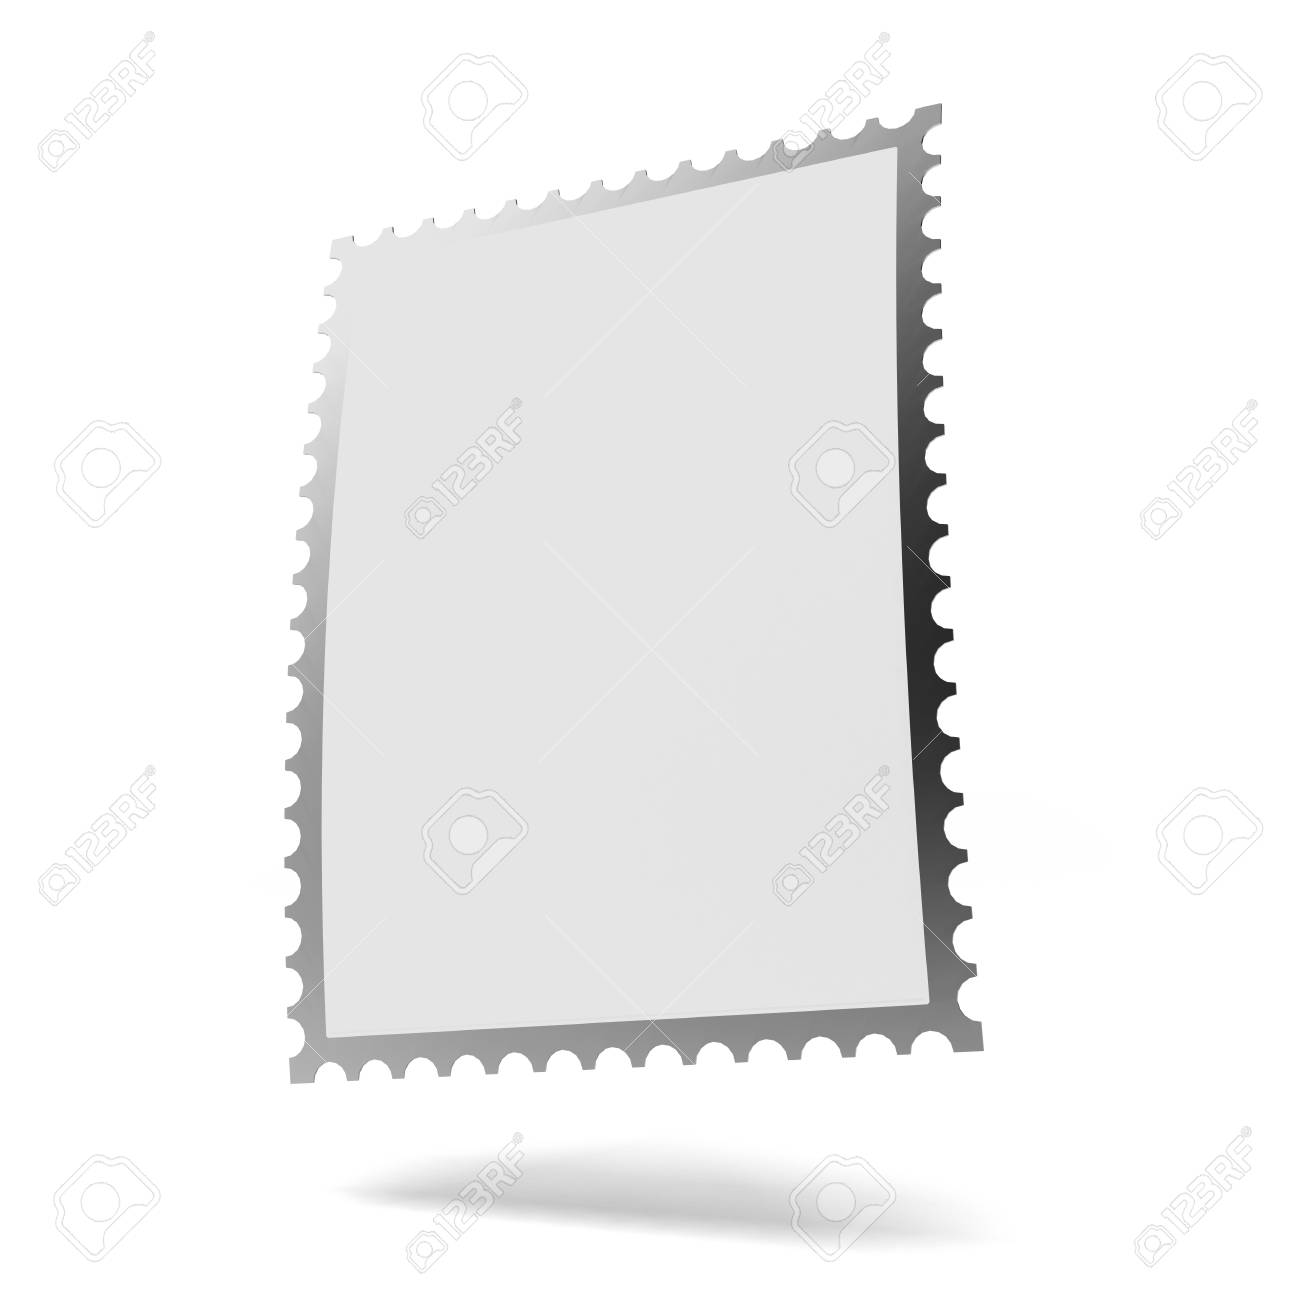 blank stamp template stock photo picture and royalty free image